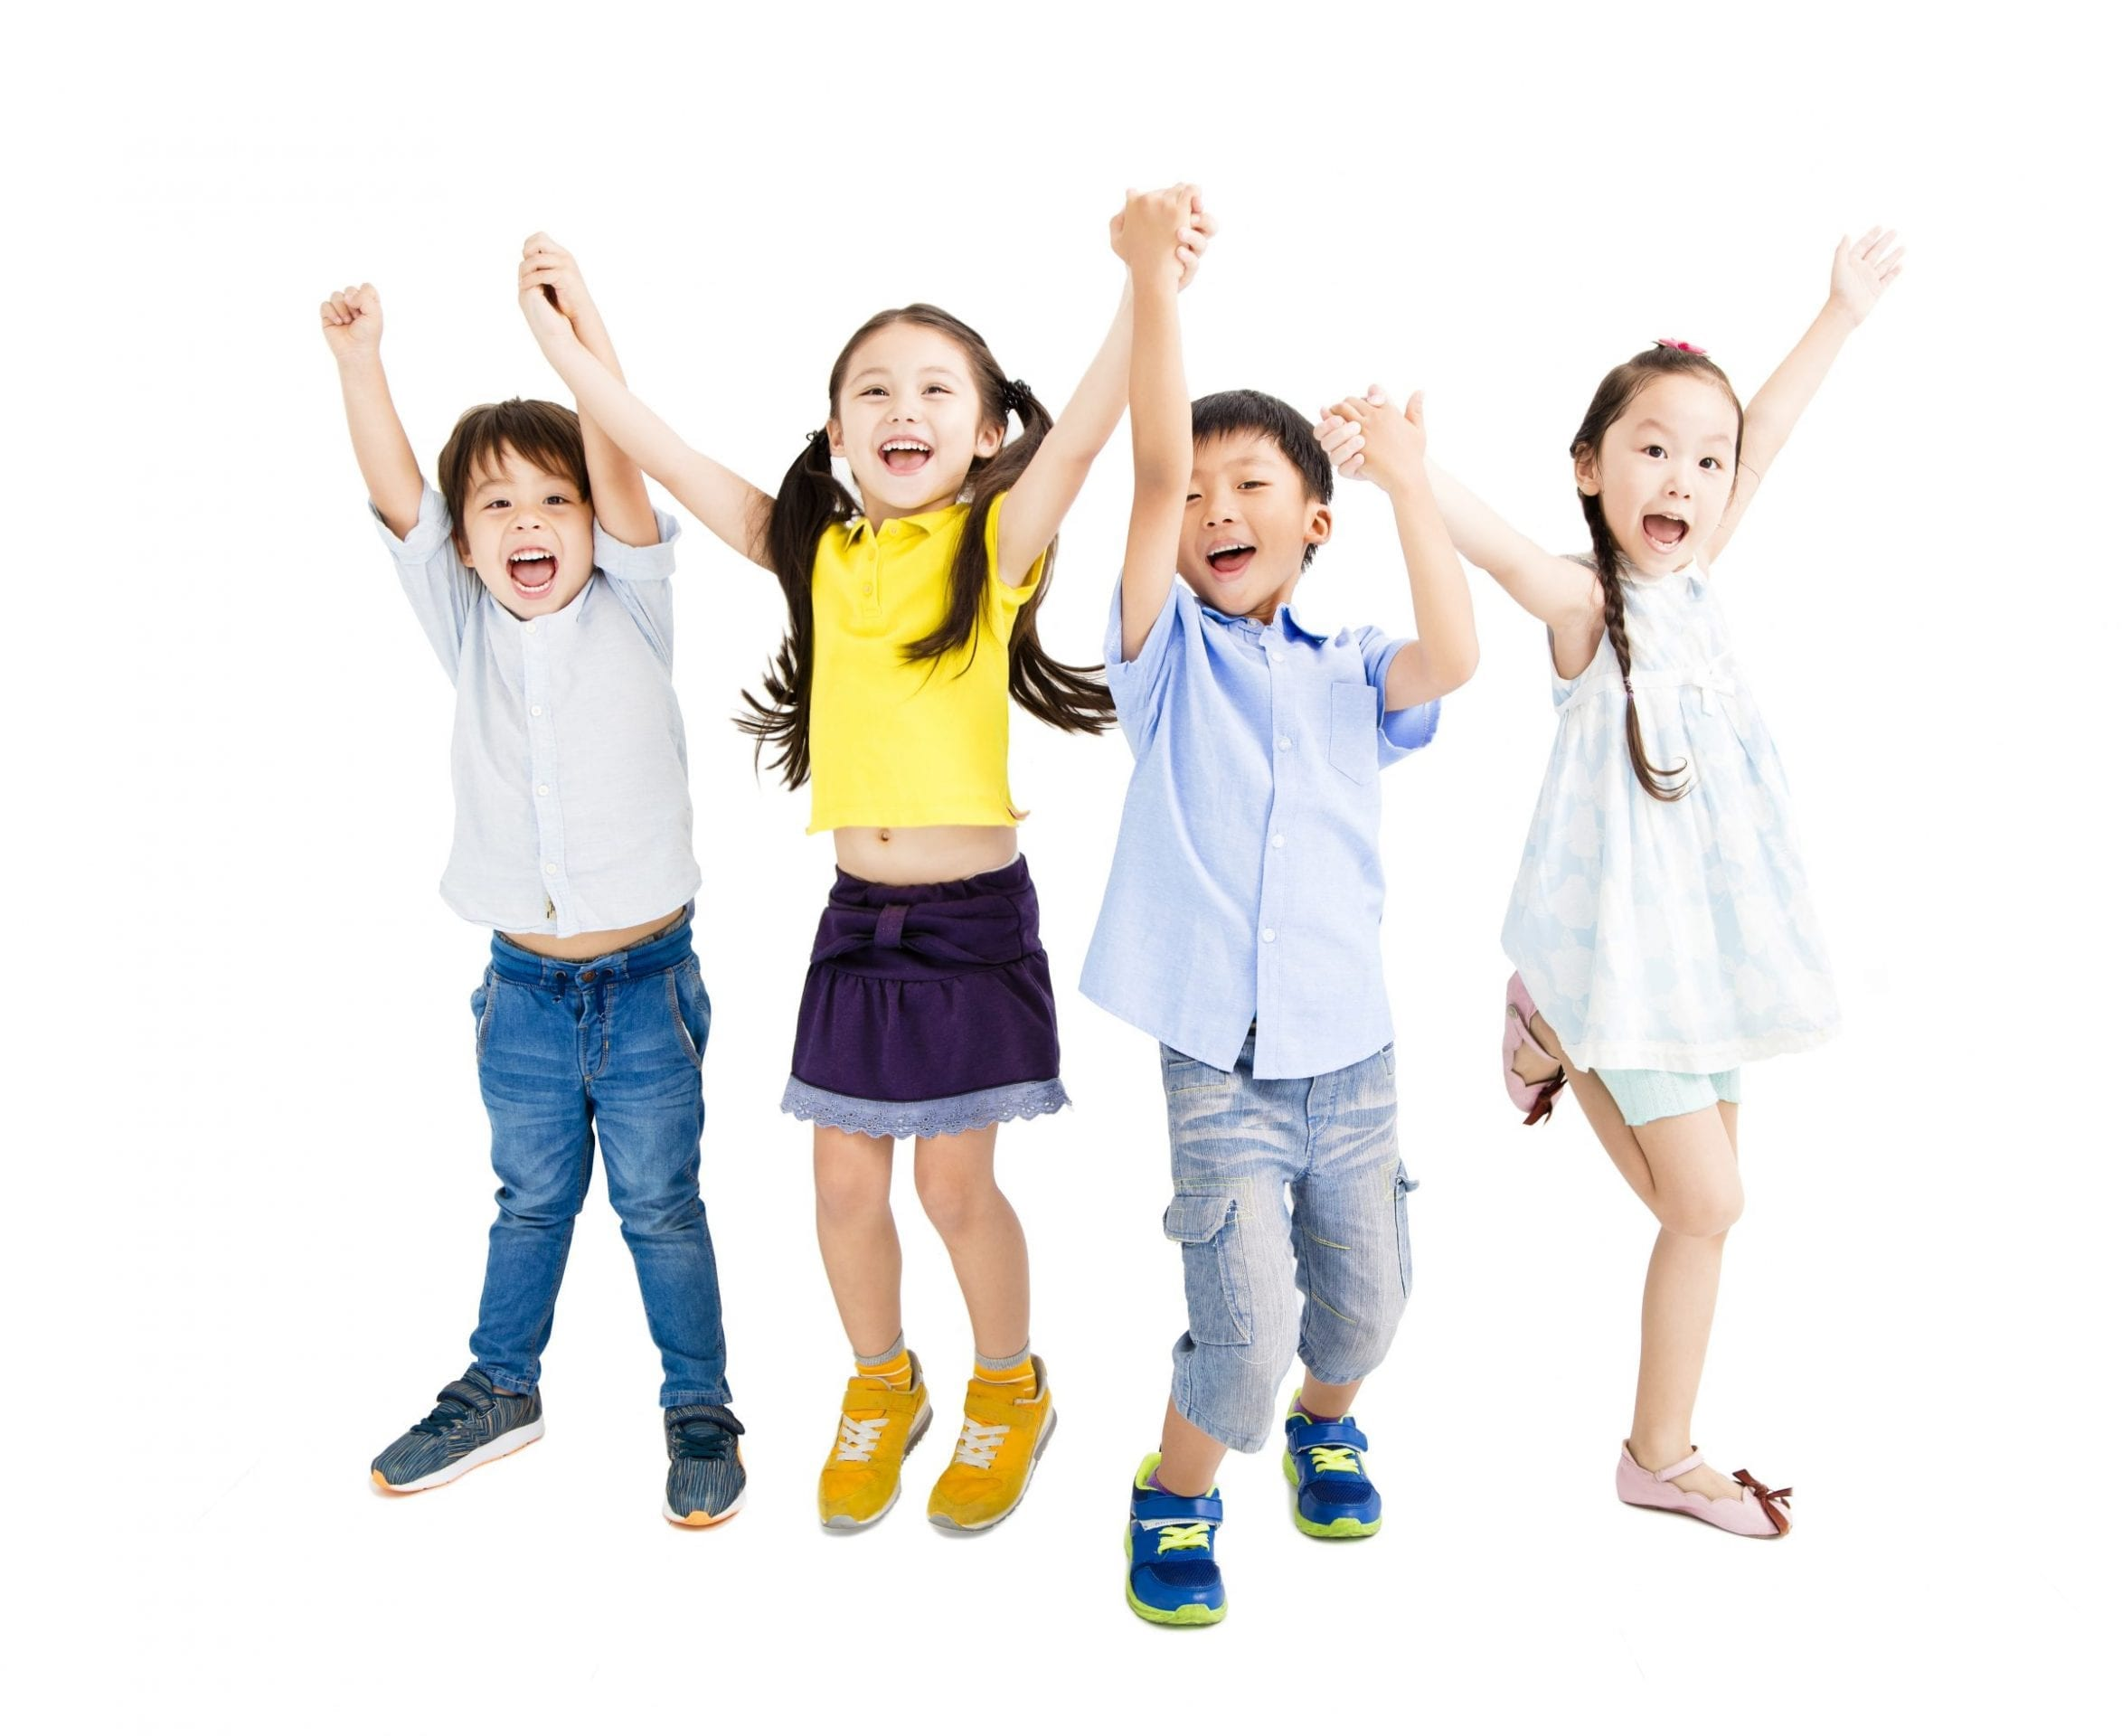 Improvisation, Drama Games and Exercises for all Ages